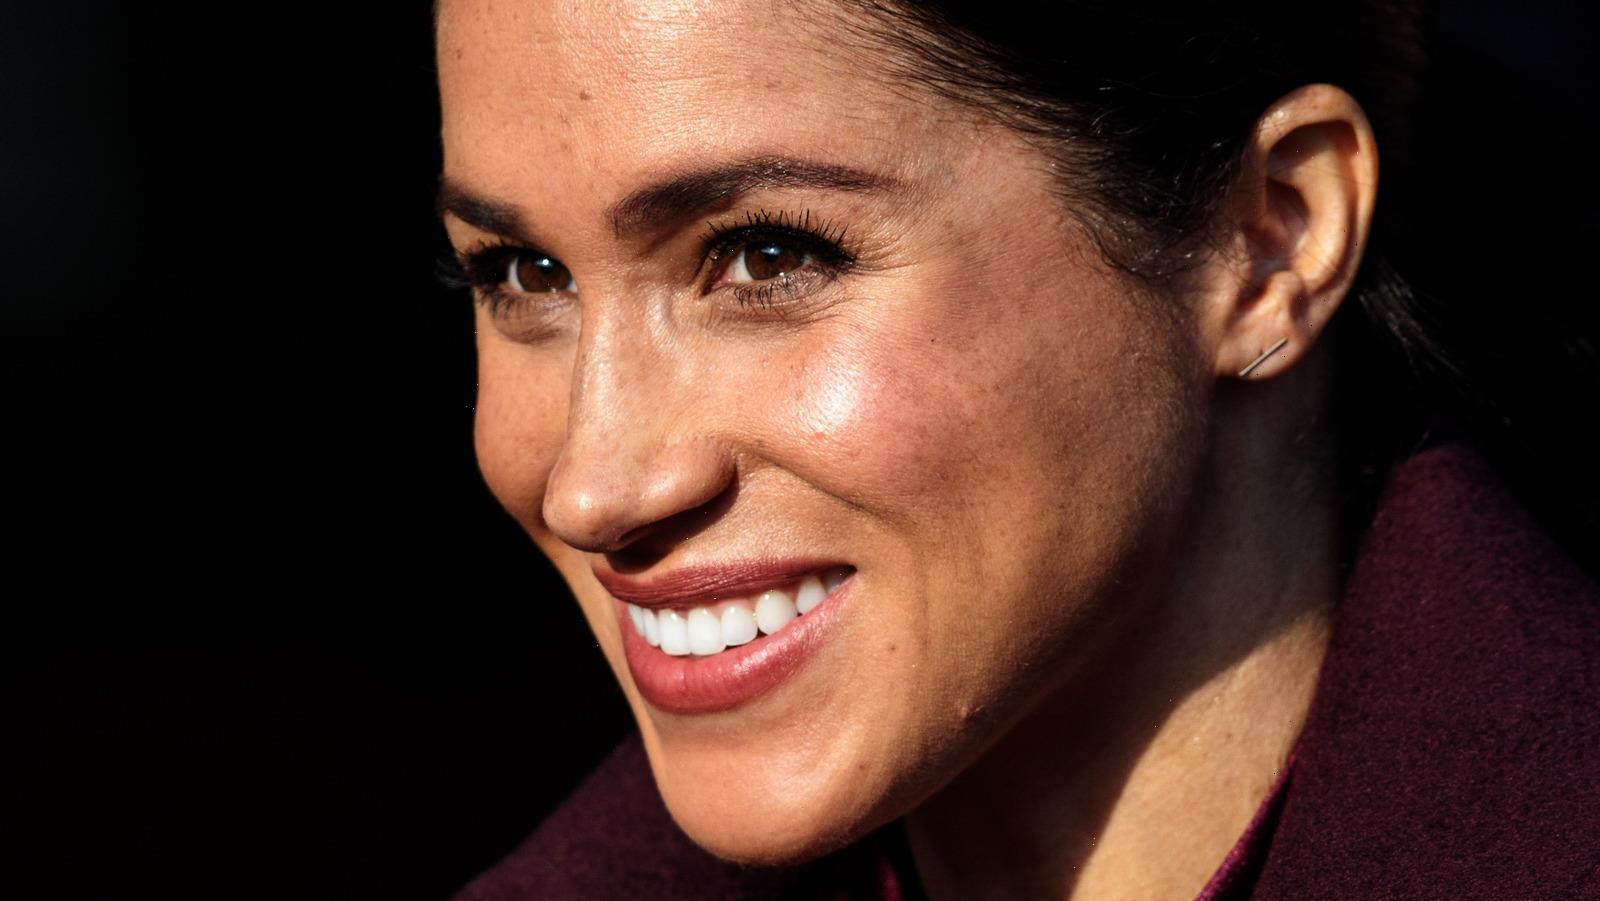 Meghan Markle's Father Thinks The Rumors Of His Daughter Going Into Politics Are A Joke